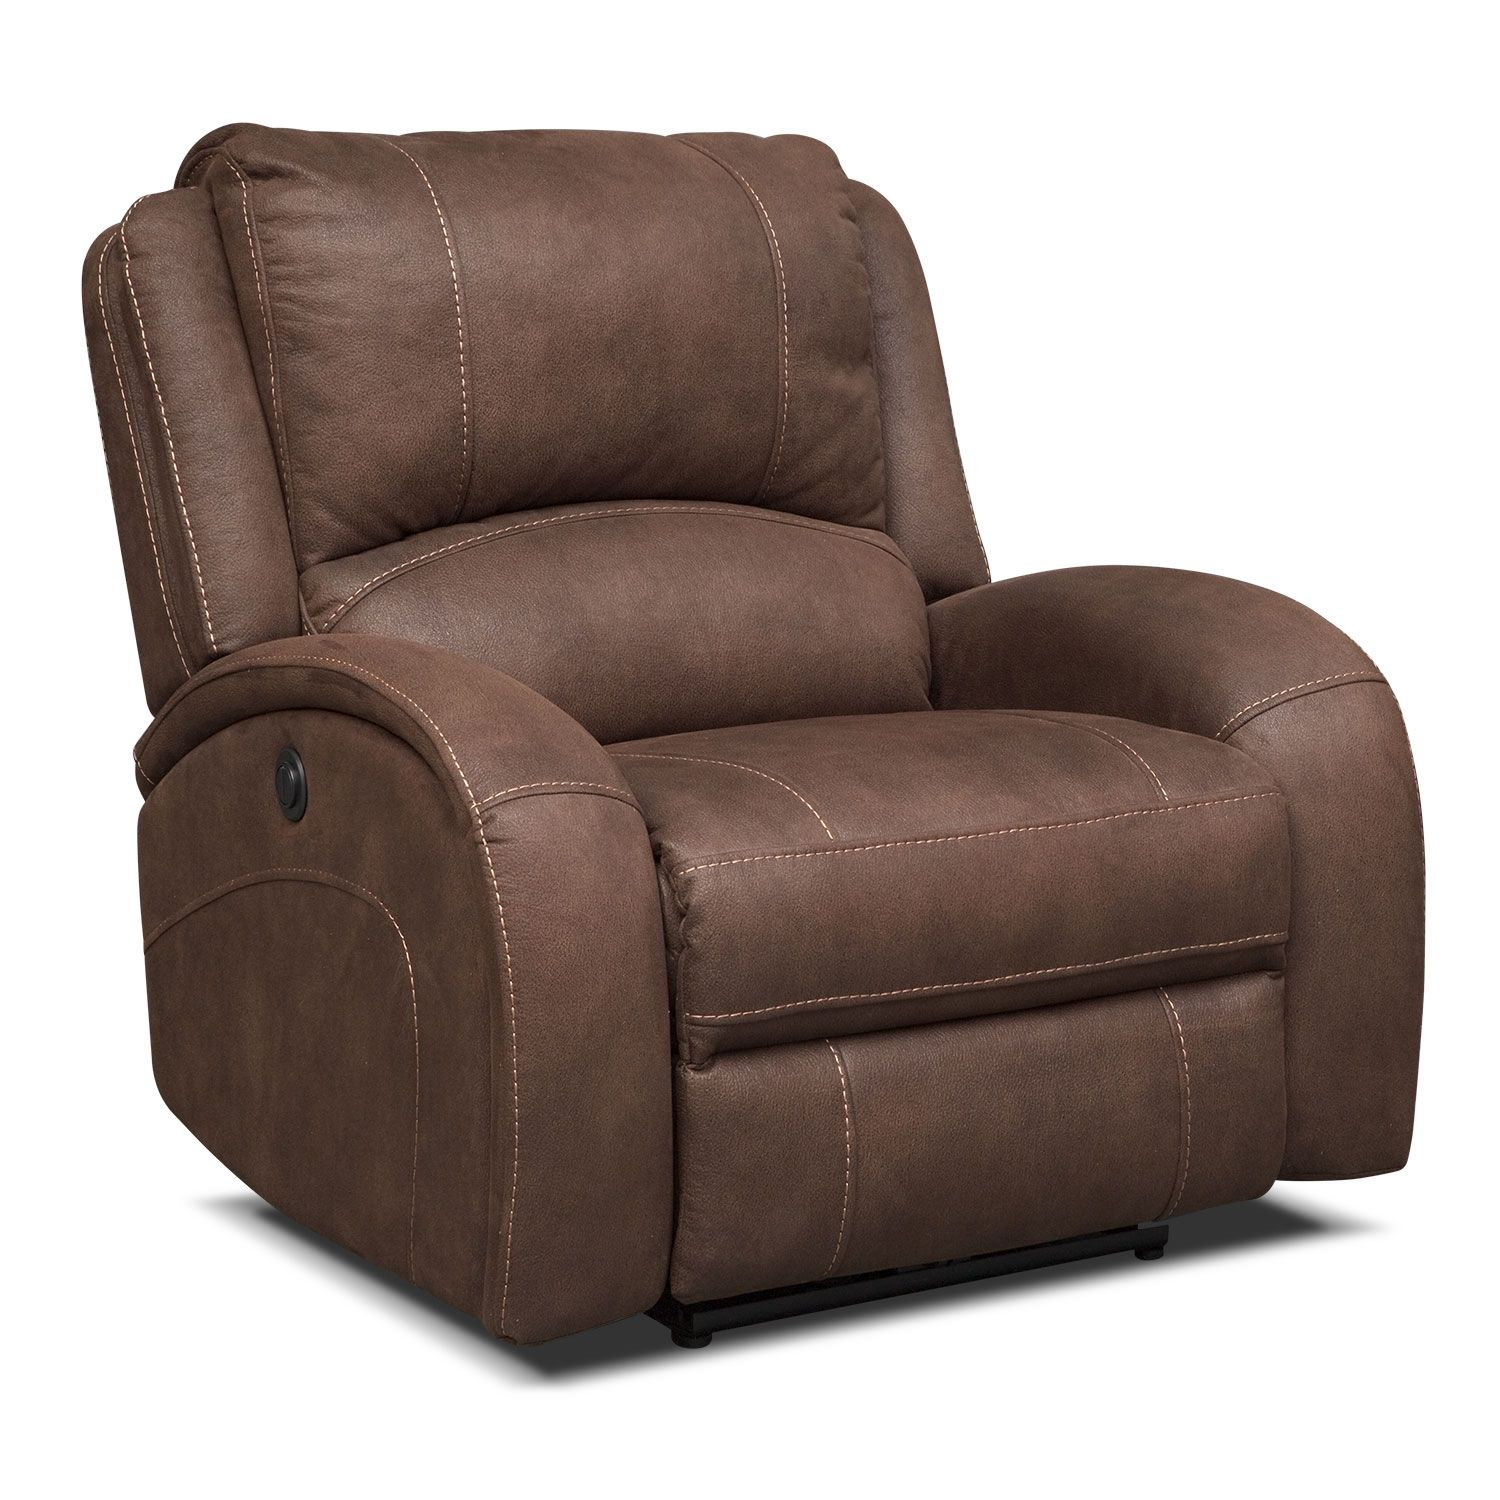 seating power recliner living city room hover aldo and reclining zoom loveseat mocha recliners product loveseats value item furniture to